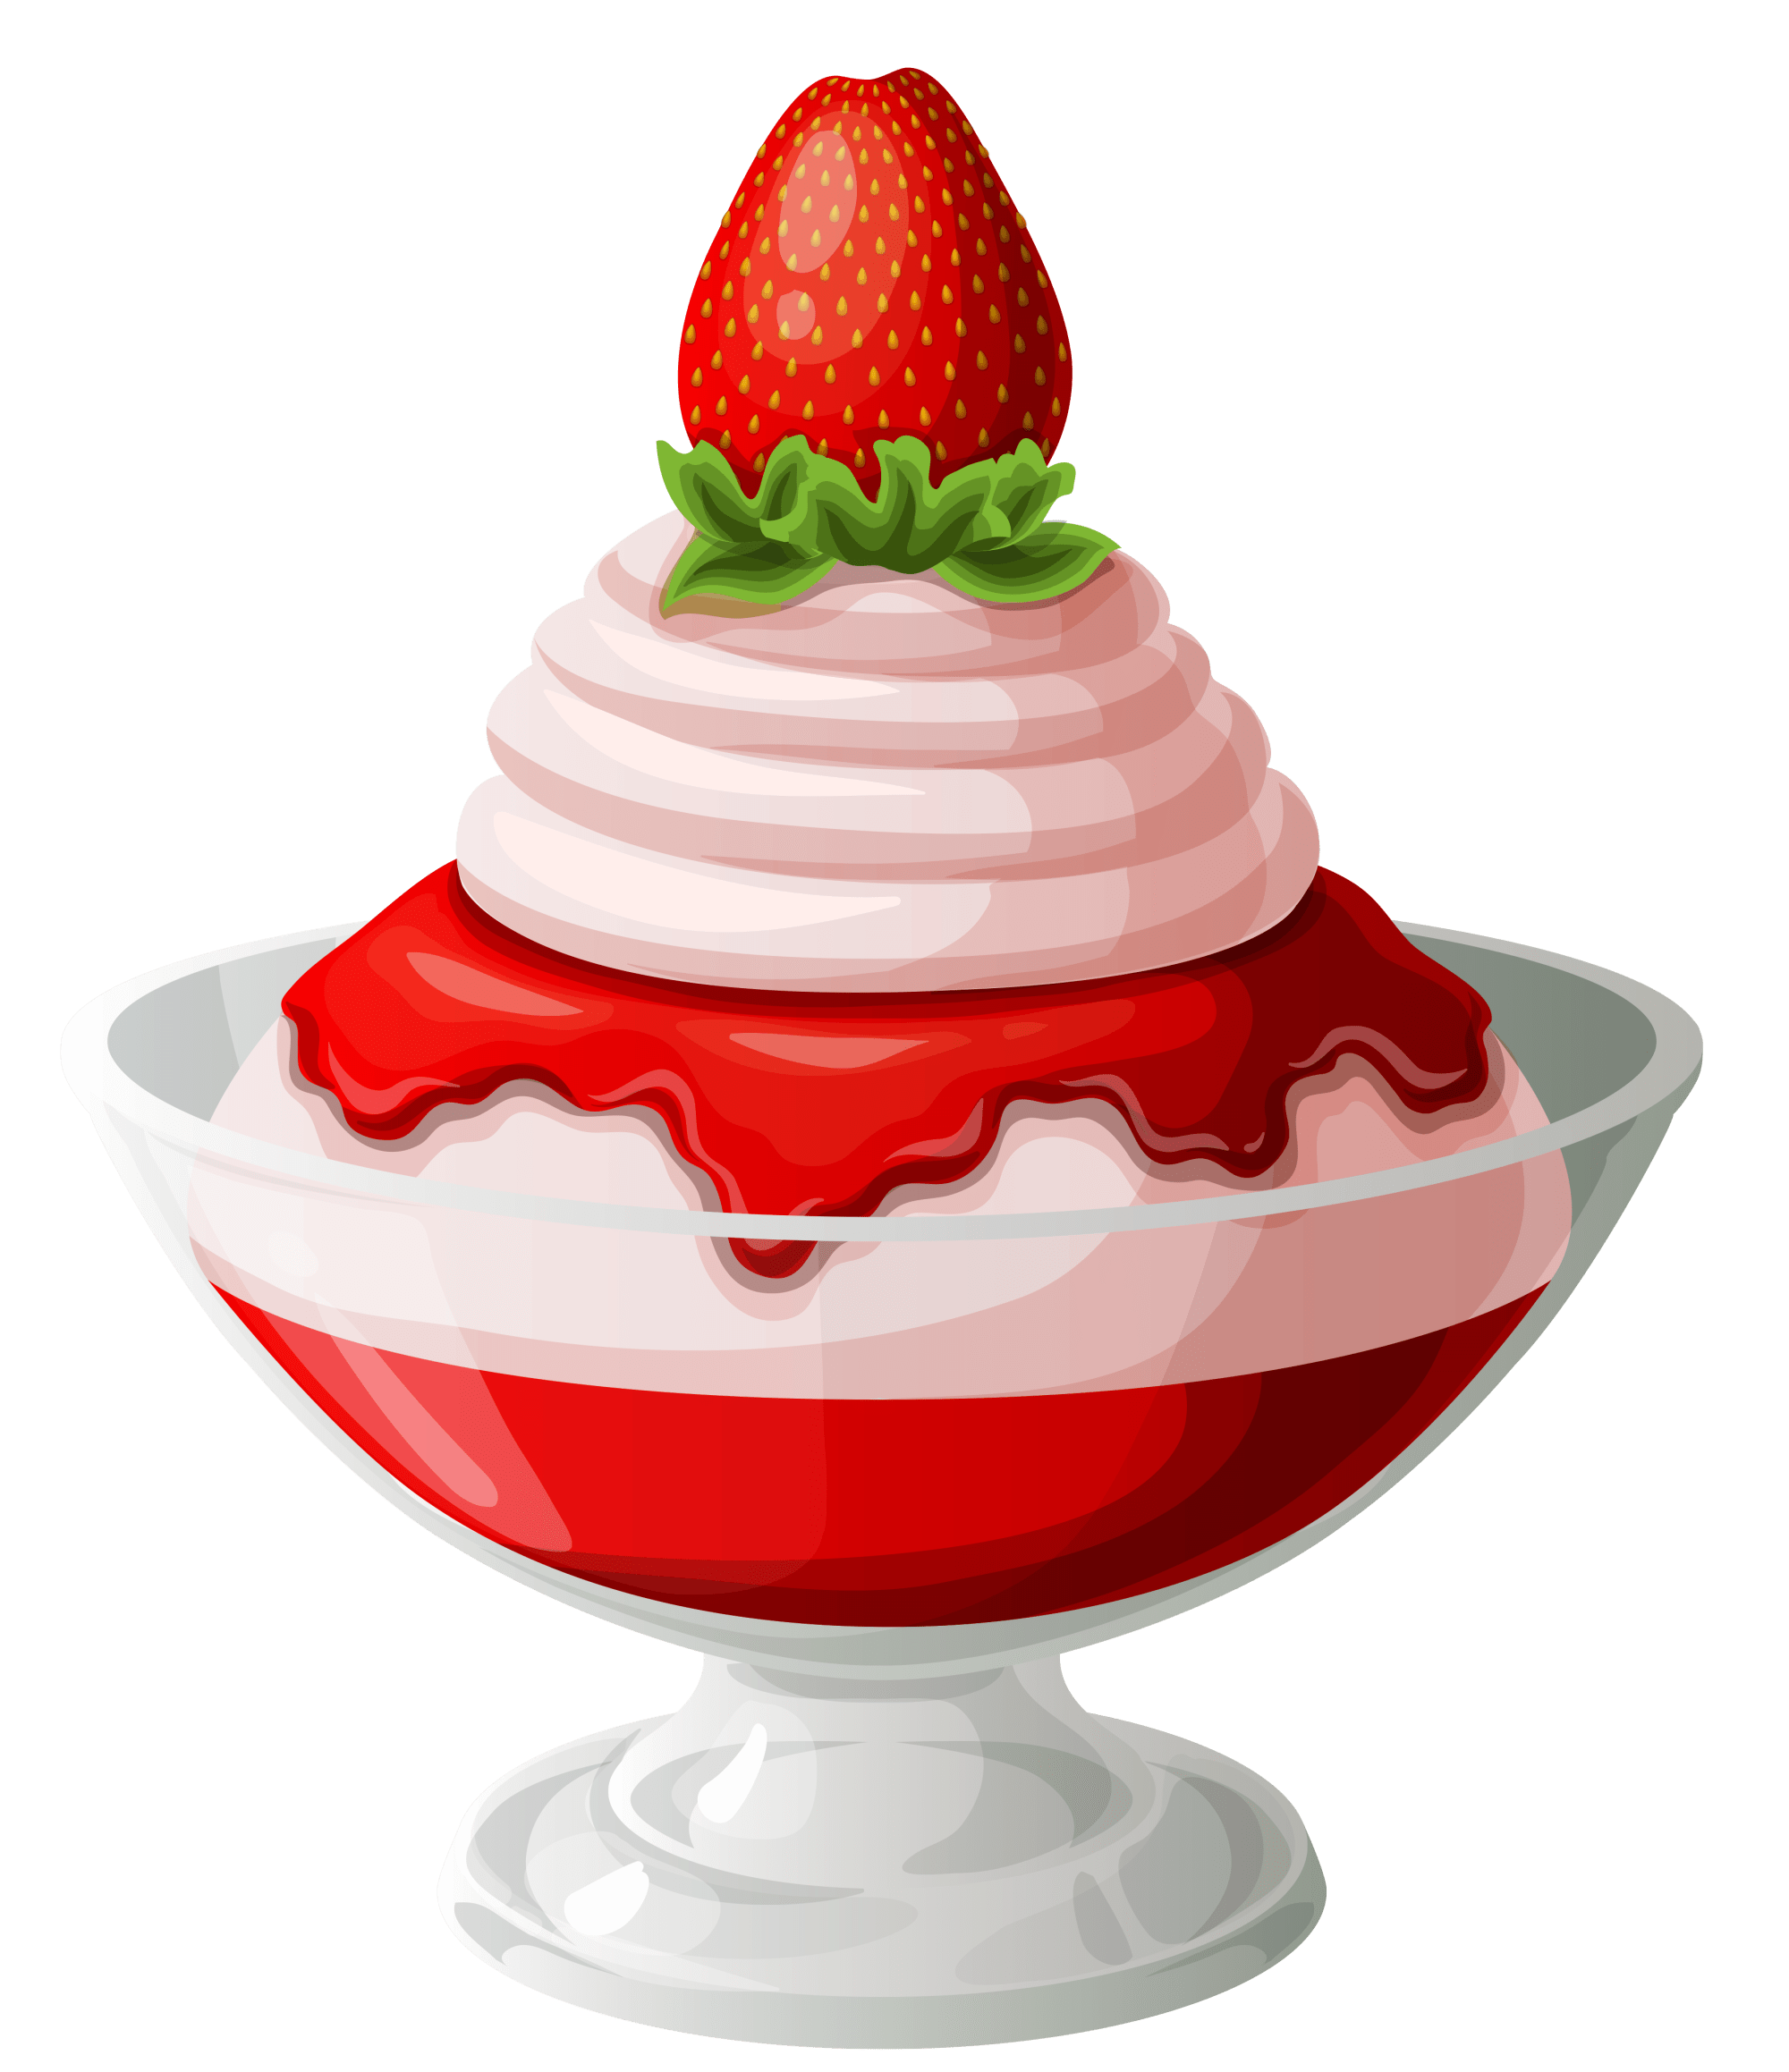 hight resolution of strawberry ice cream sundae transparent picture 2 clip art